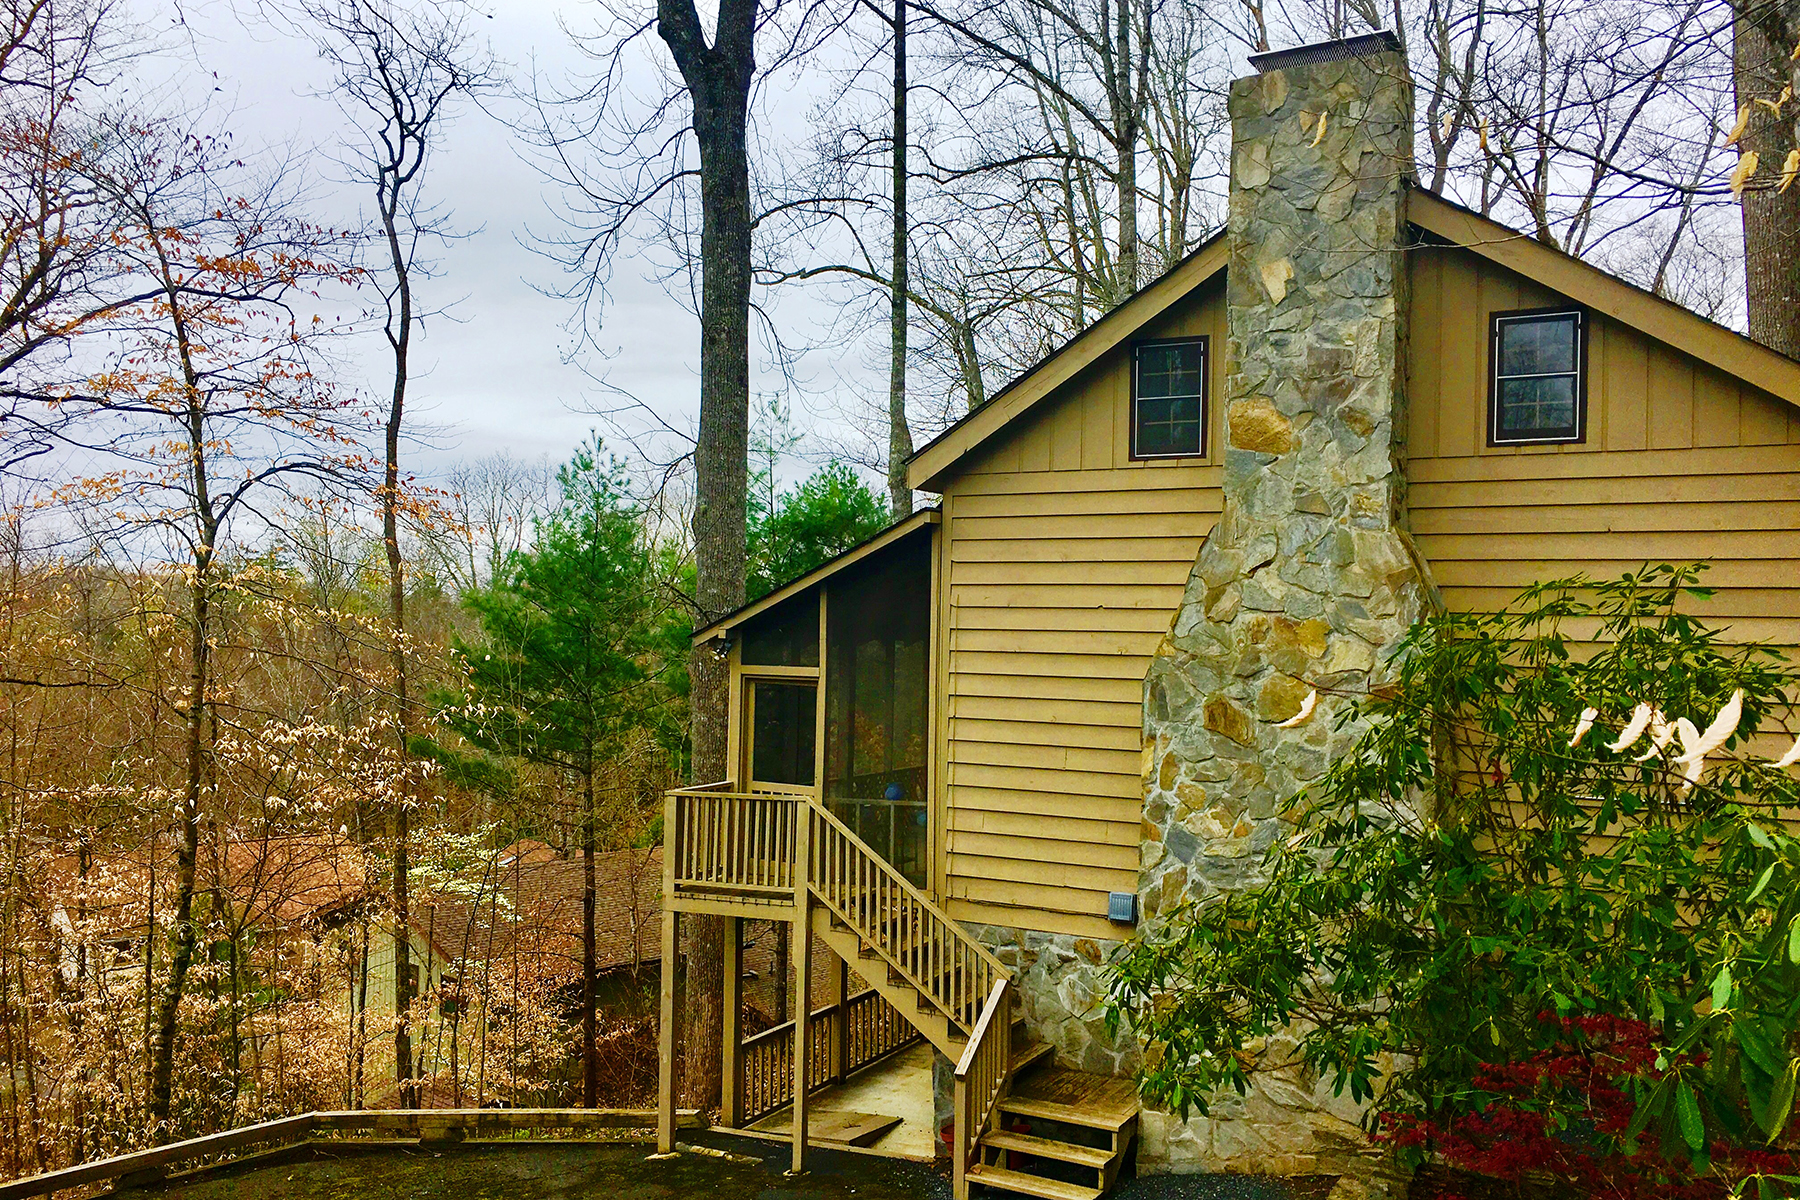 Single Family Home for Sale at LINVILLE - LAND HARBOR 69 Balsam Linville, North Carolina, 28646 United States